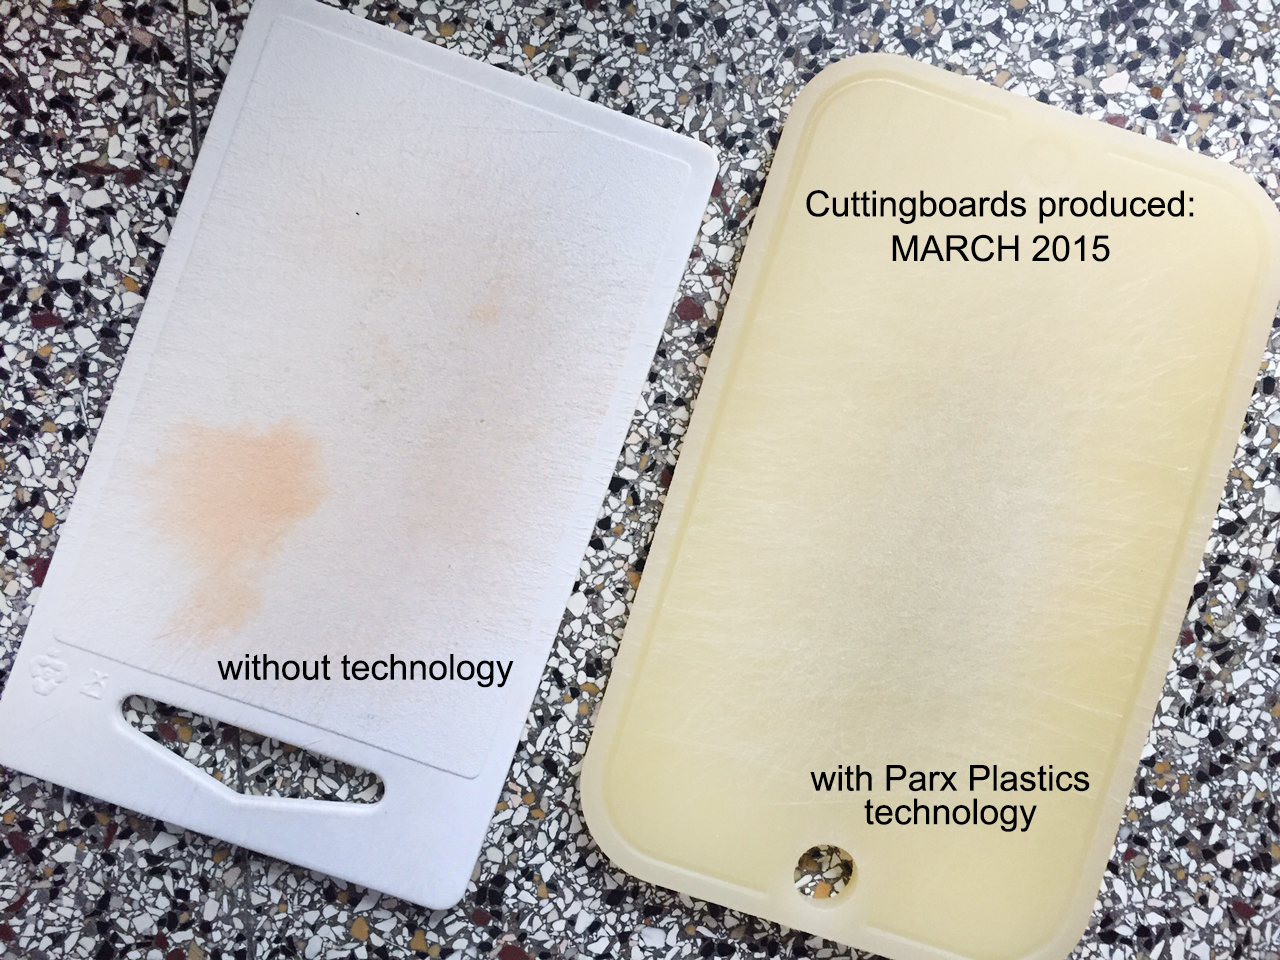 A cutting board without technology compared to a cutting board with Parx' technology, used in the same household.